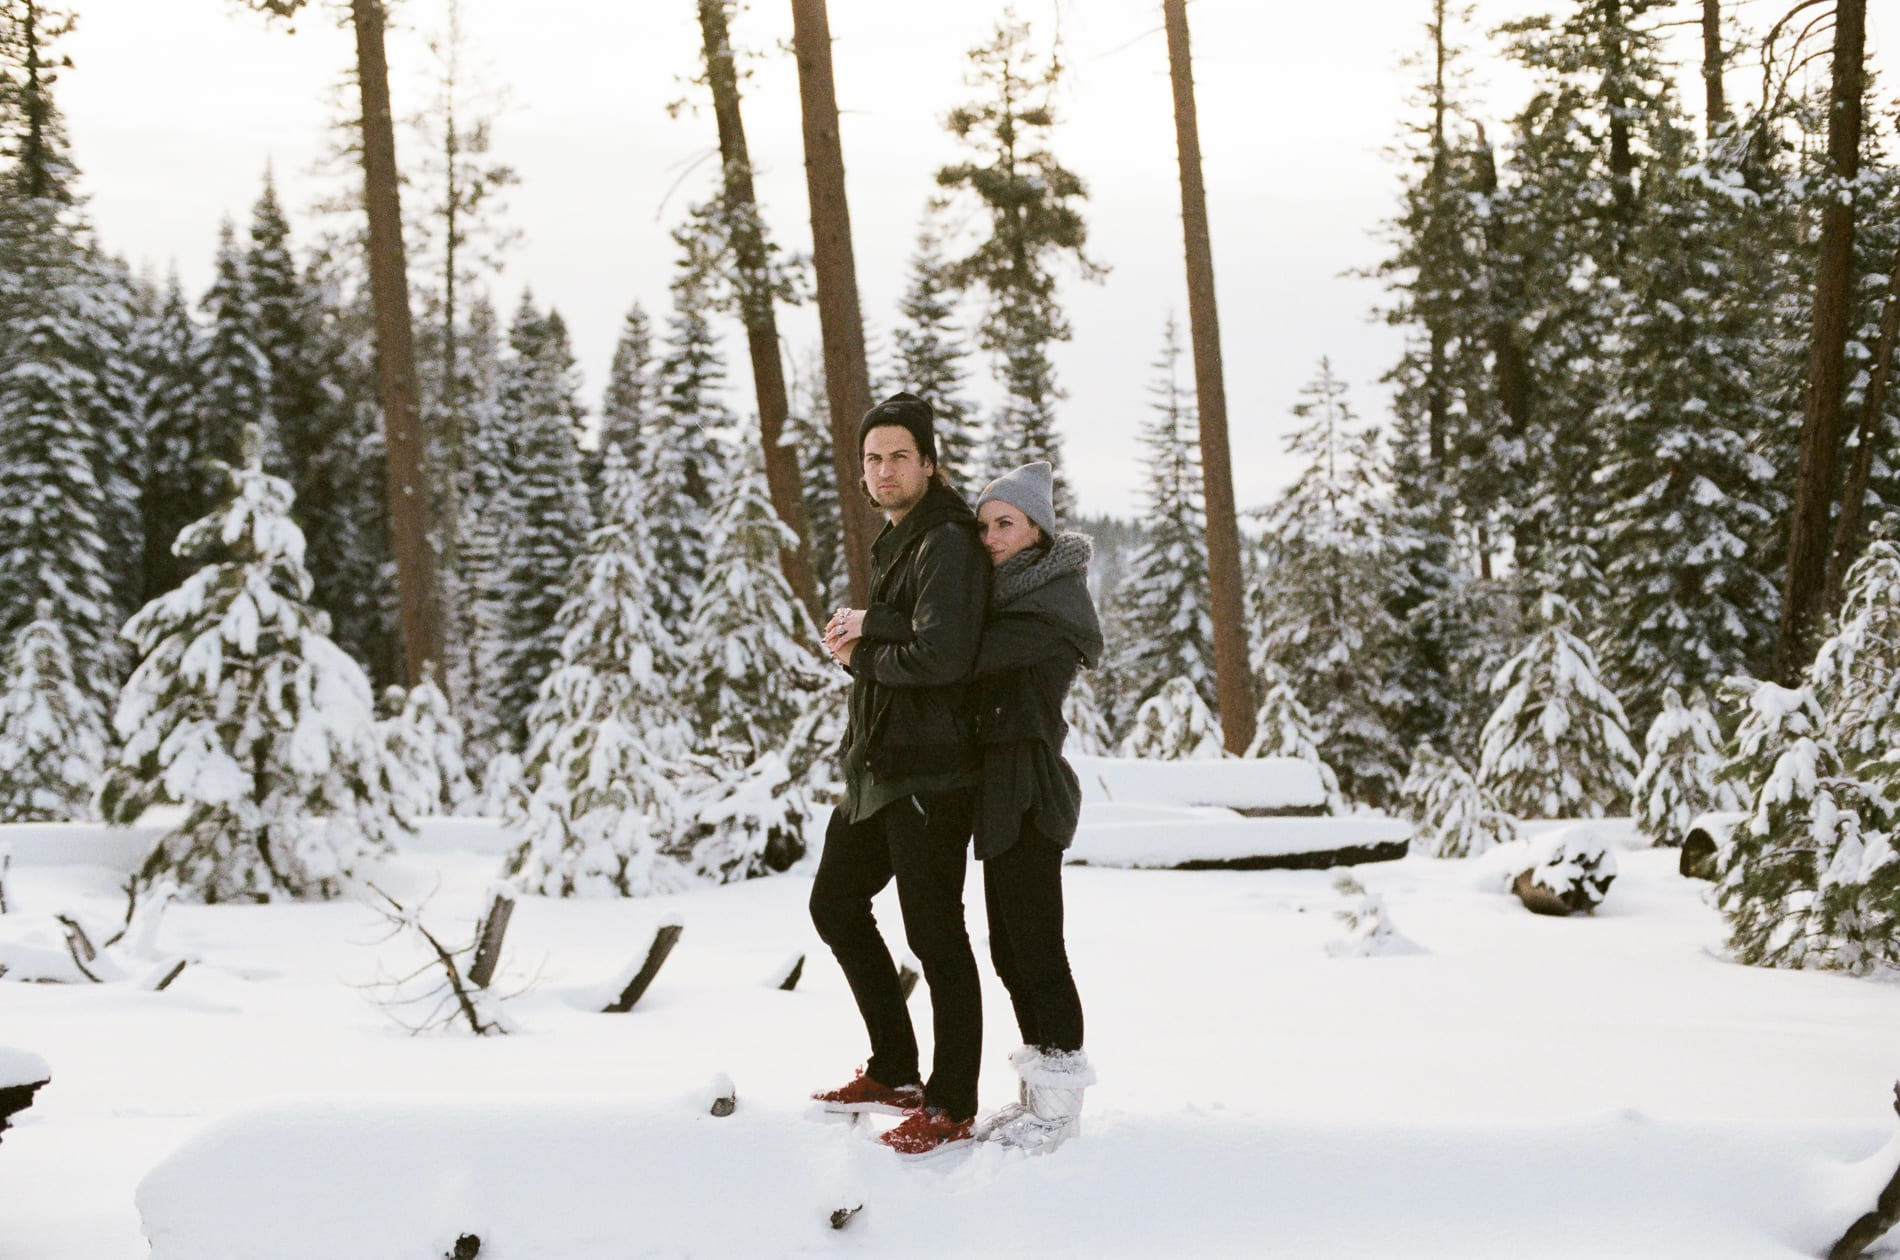 mt-lassen-winter-snow-couples-photo-10